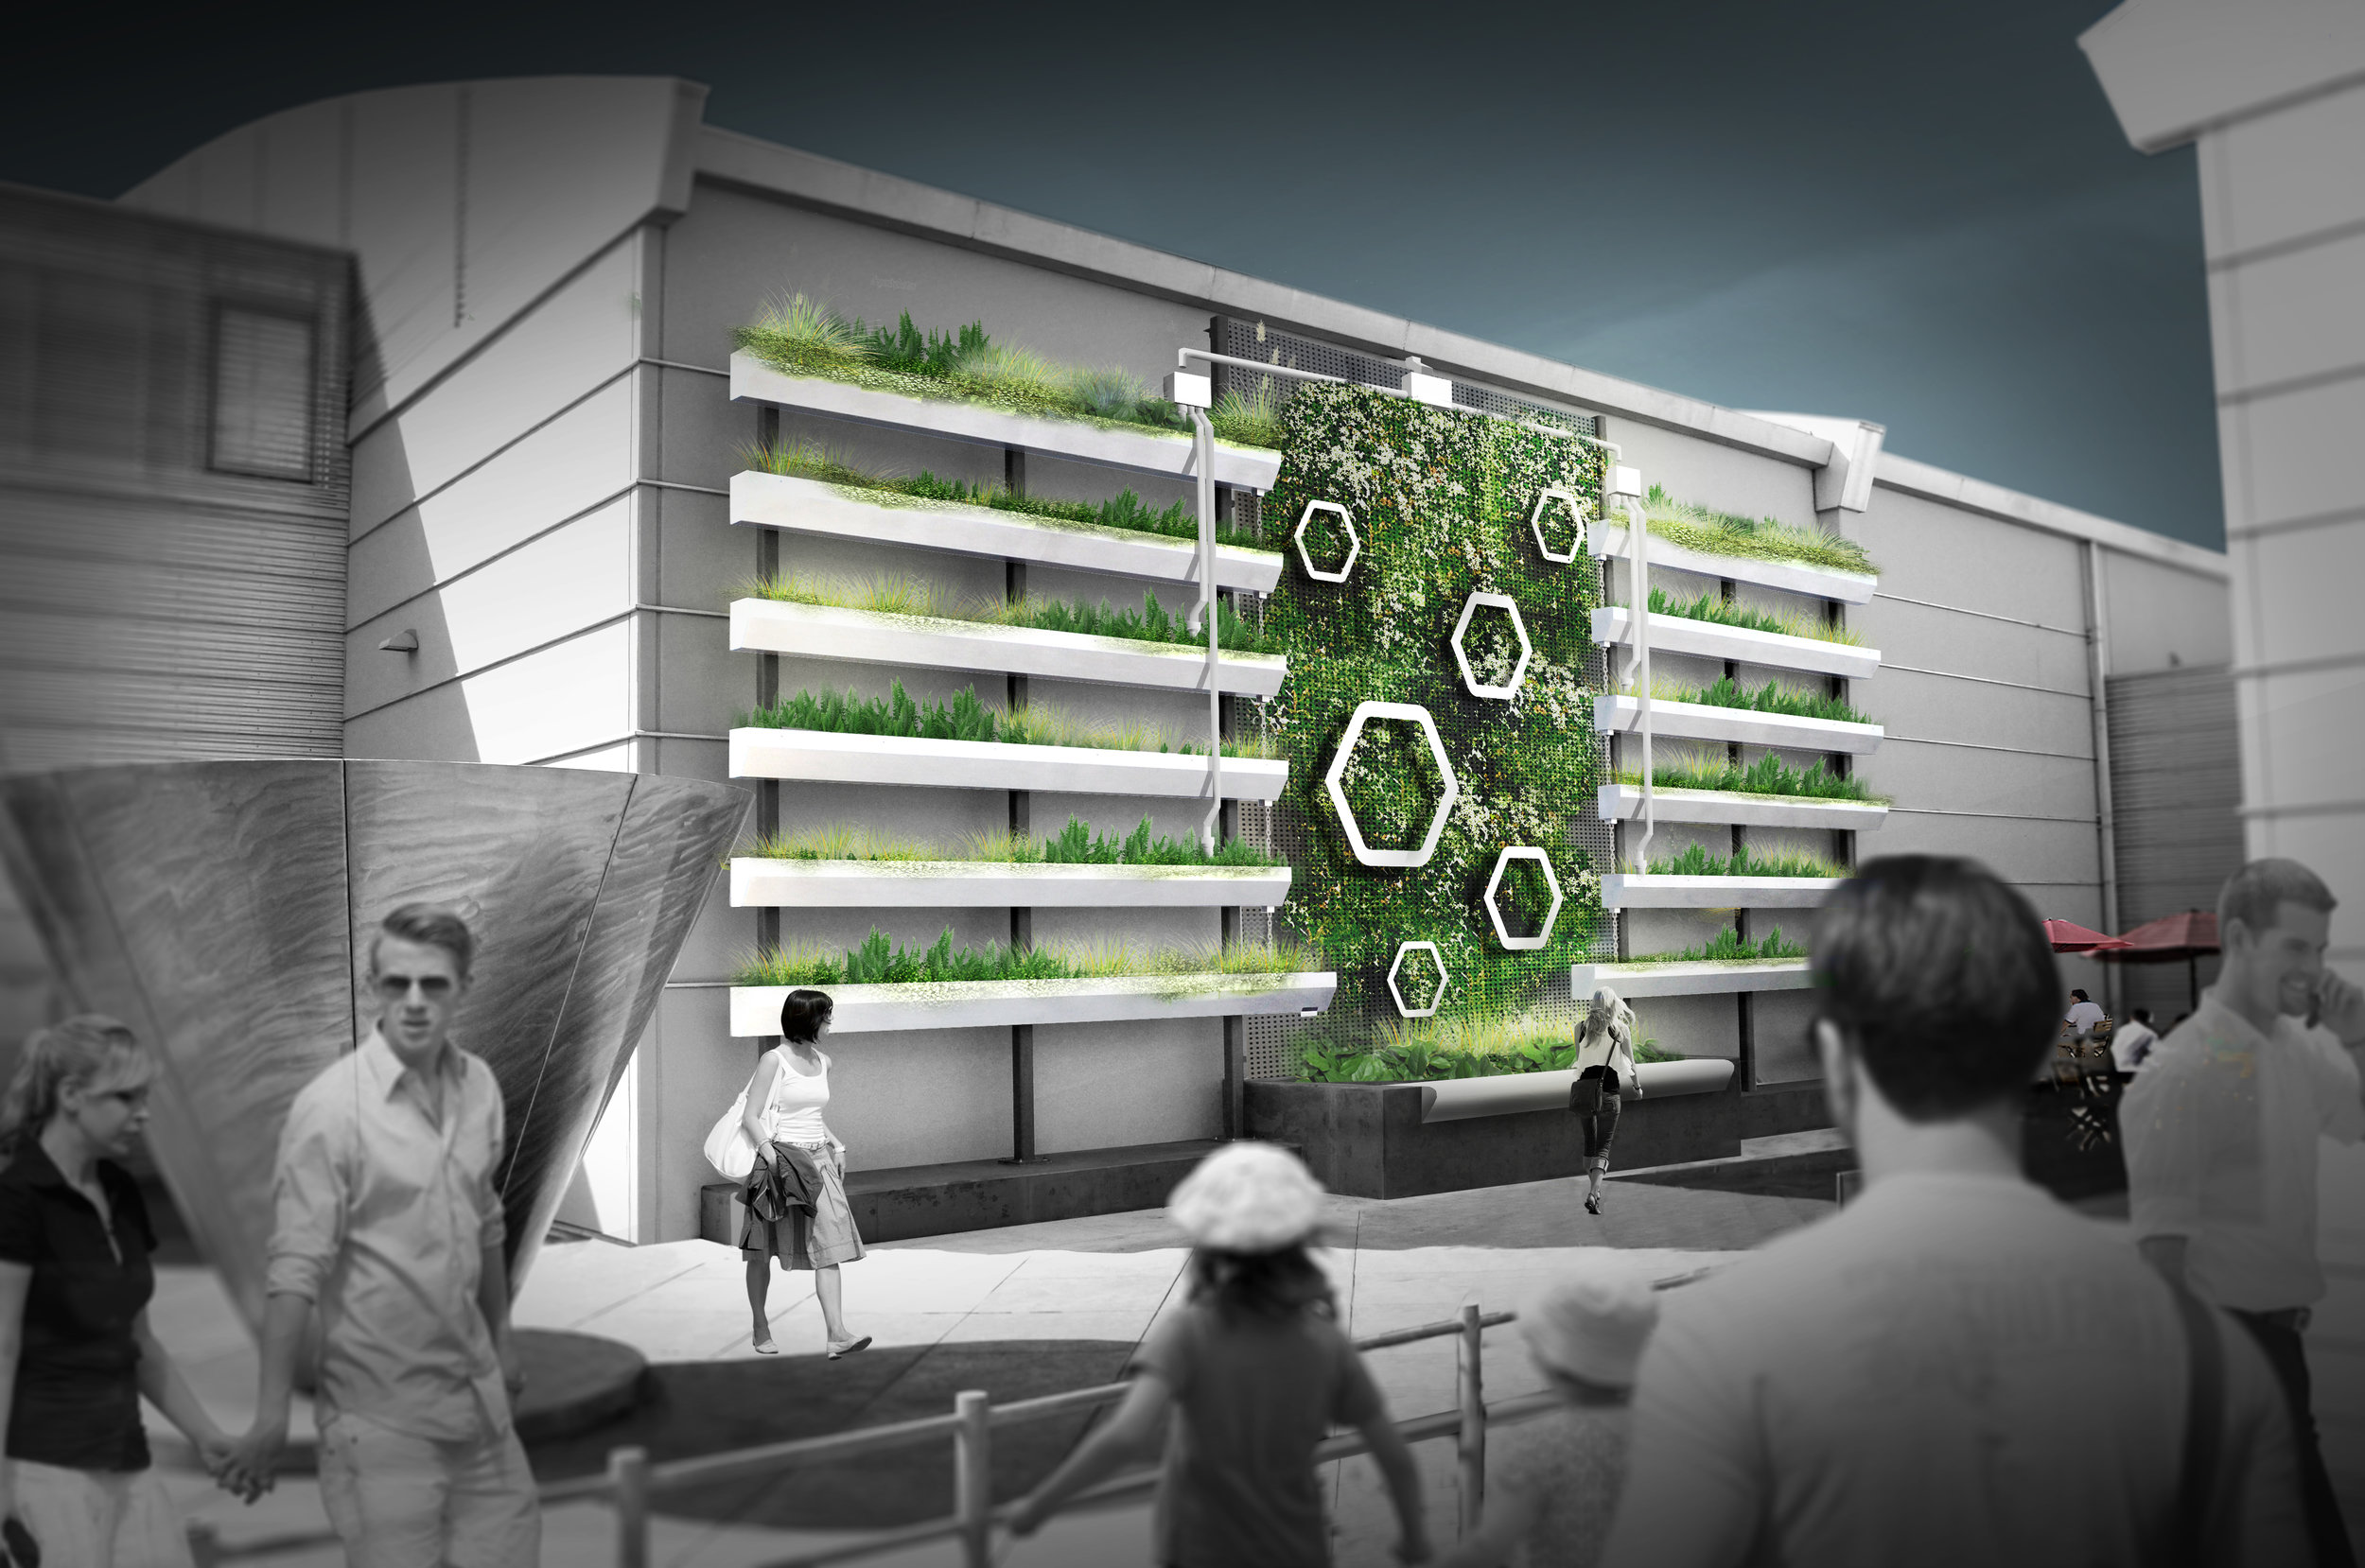 Green wall in computer generated sketch with people enjoying it